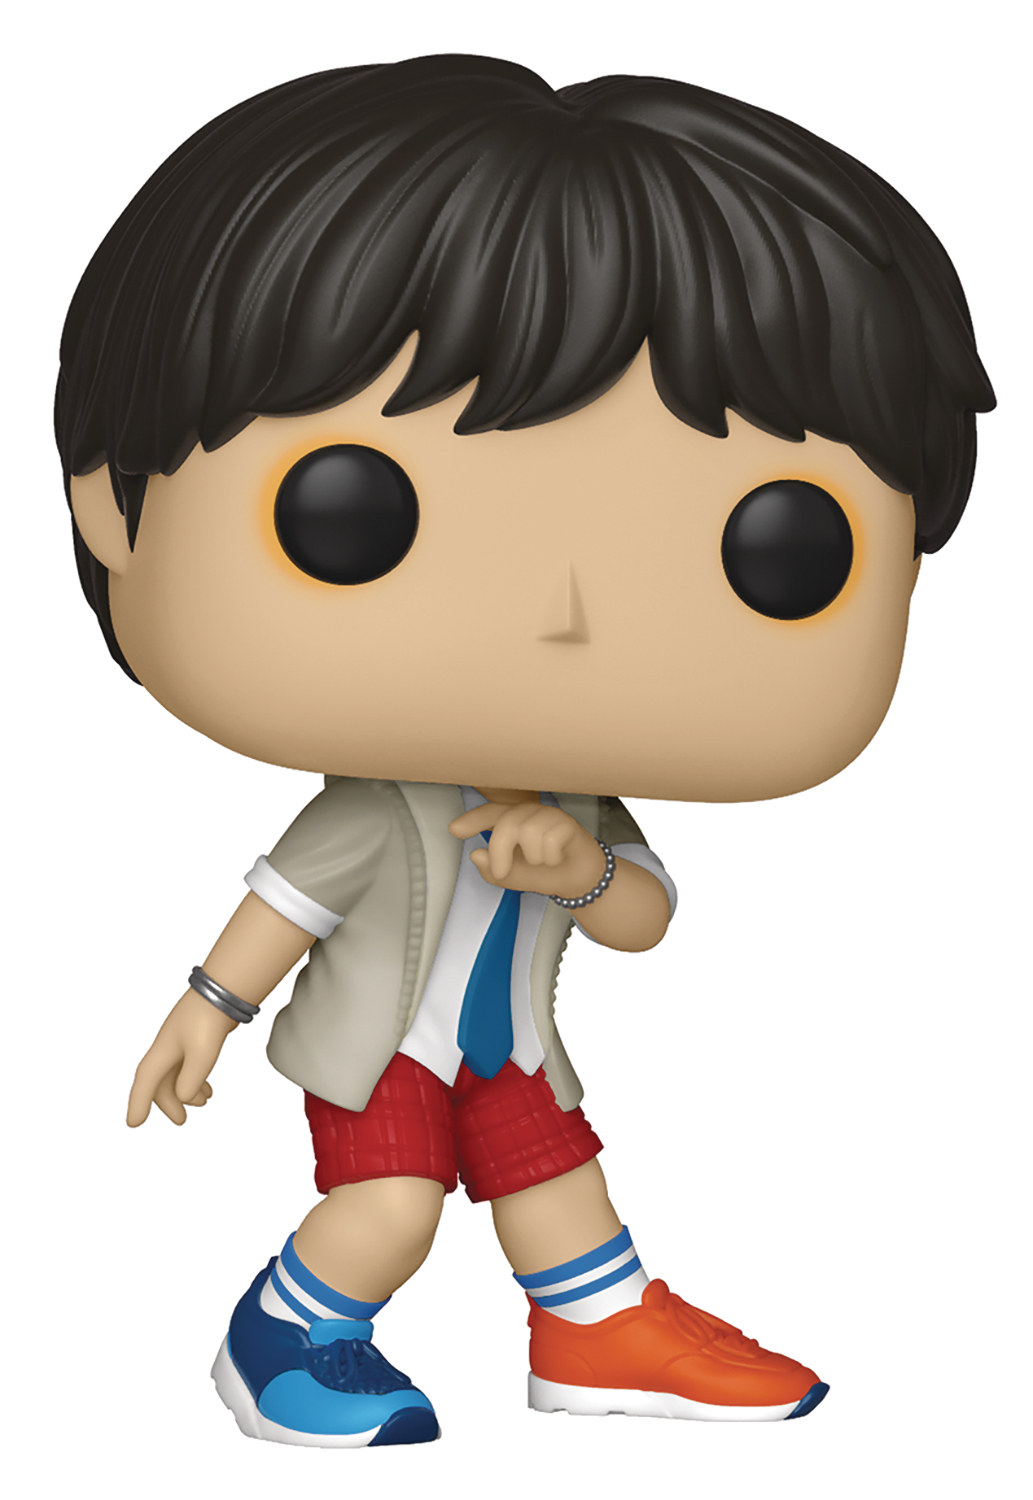 POP ROCKS BTS J HOPE VINYL FIGURE